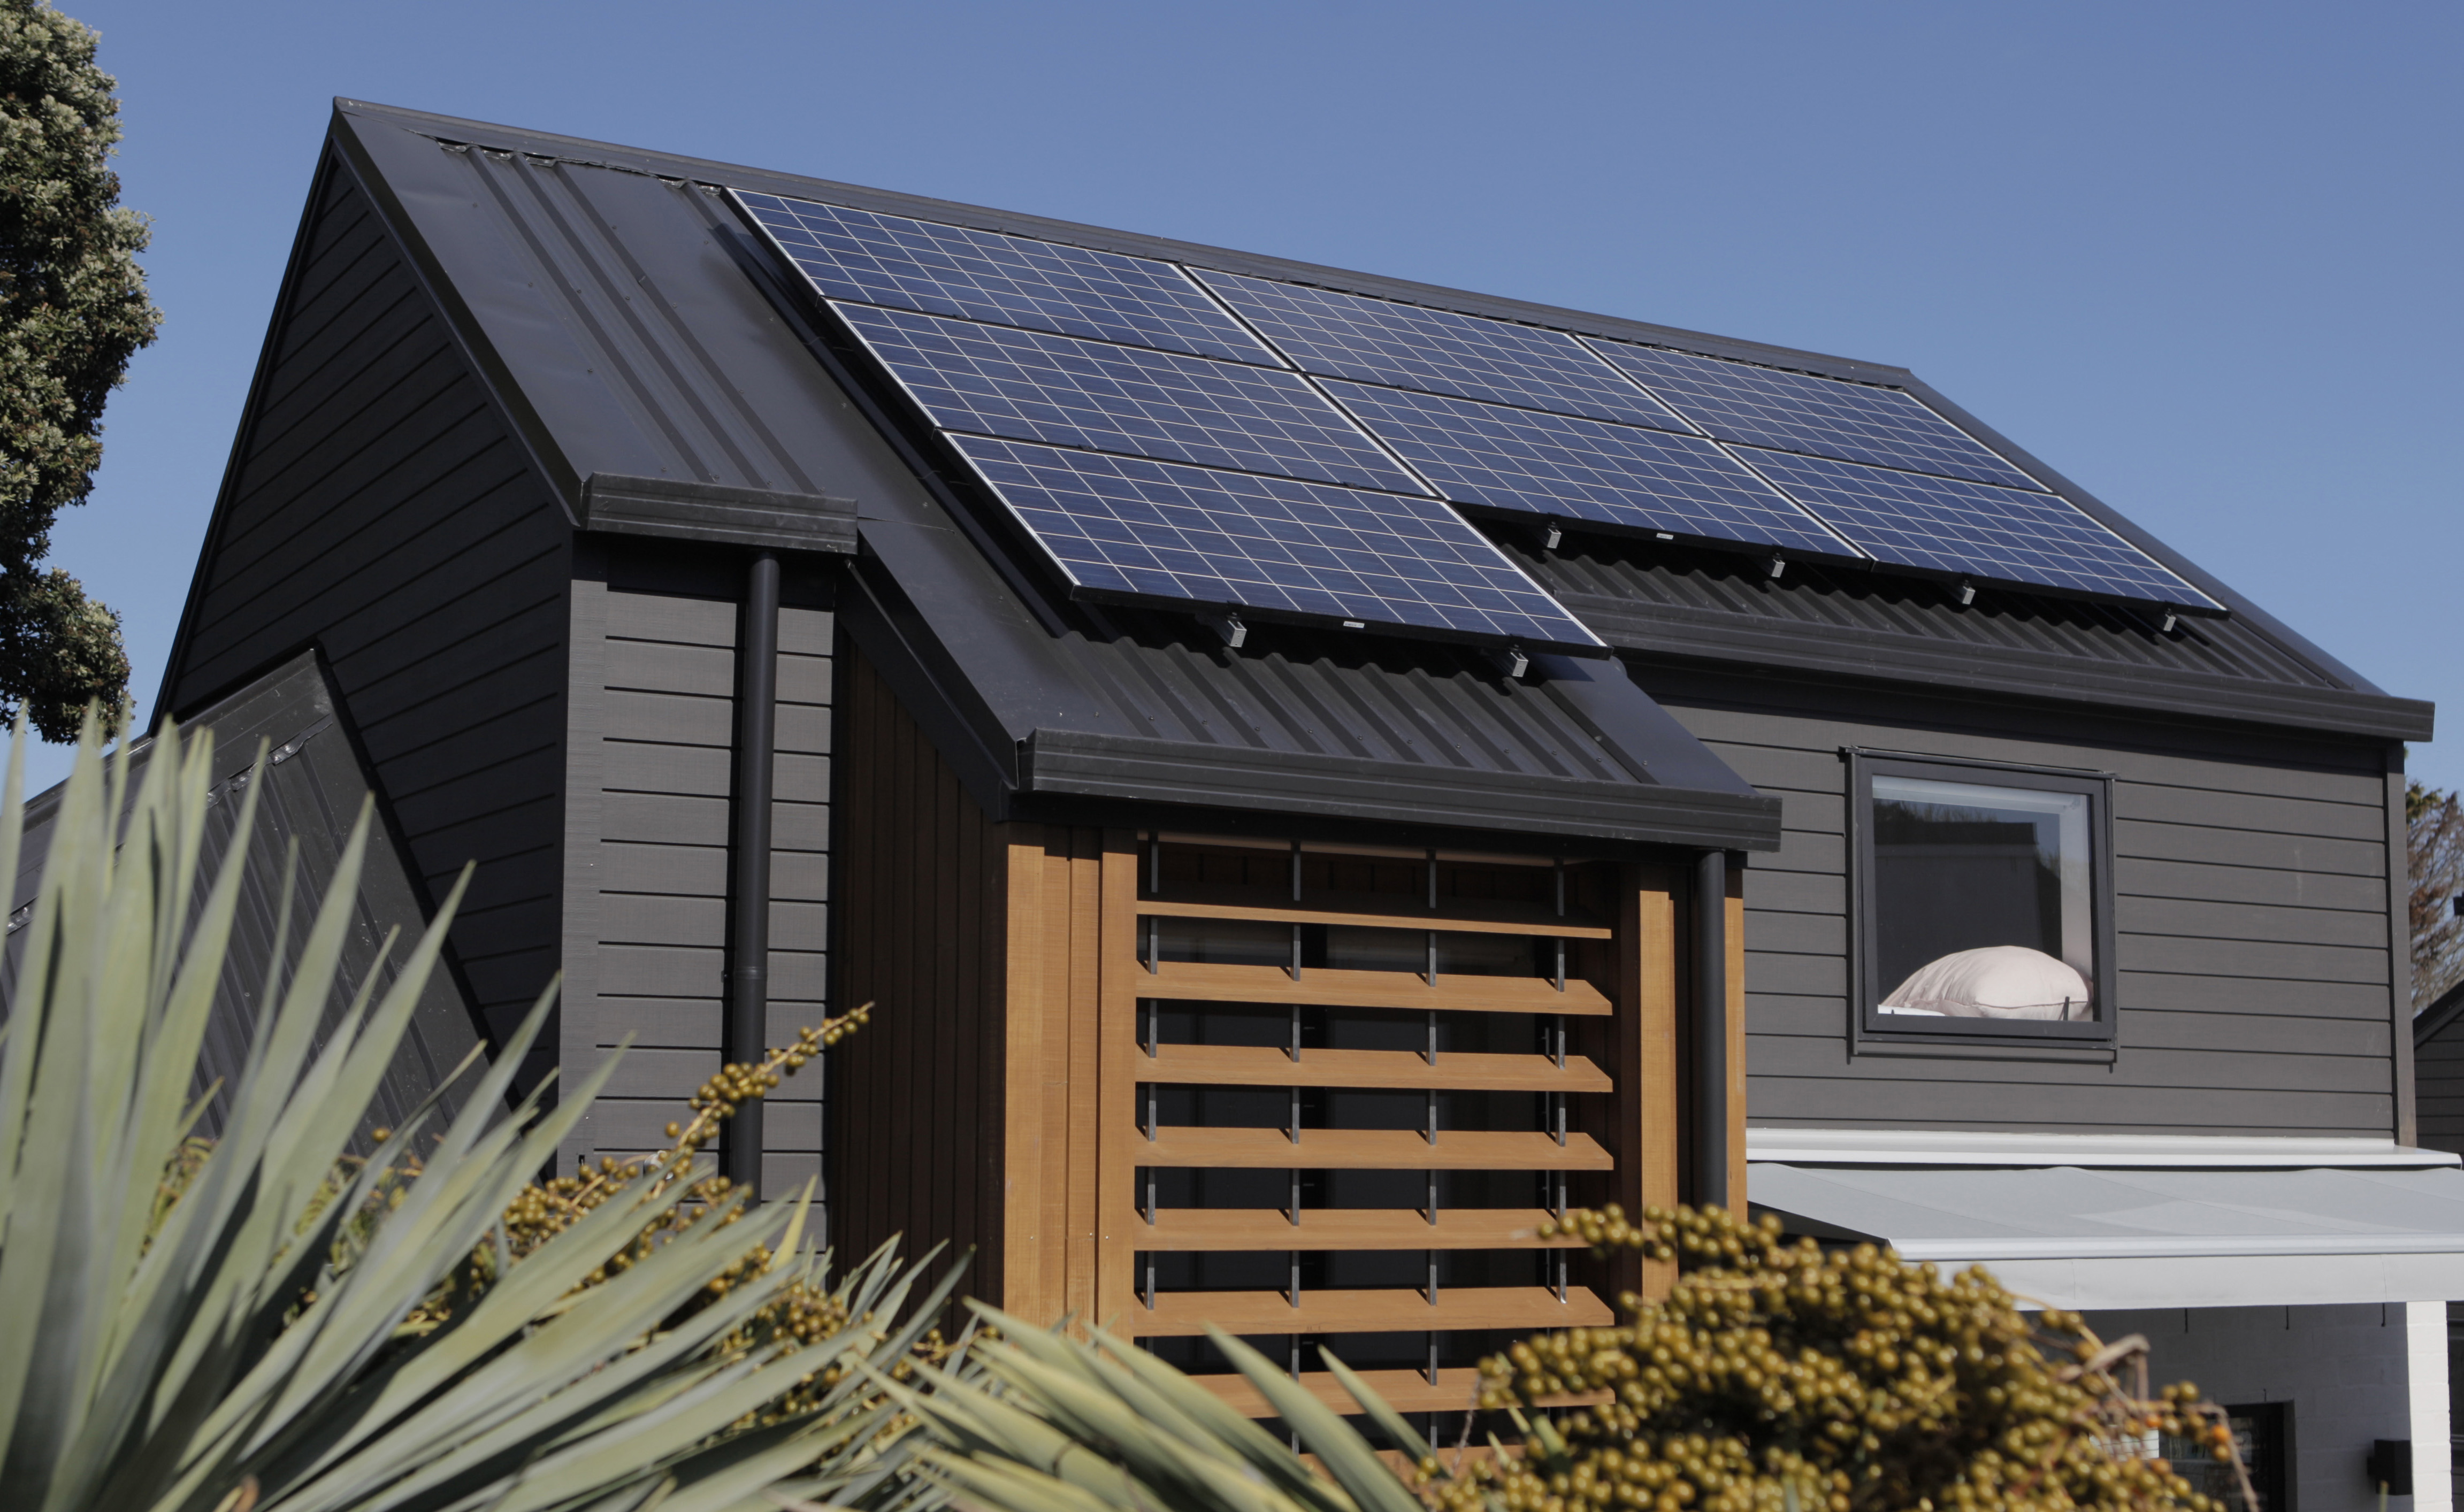 solarcity appoints Ikon Communications to handle media strategy and implementation